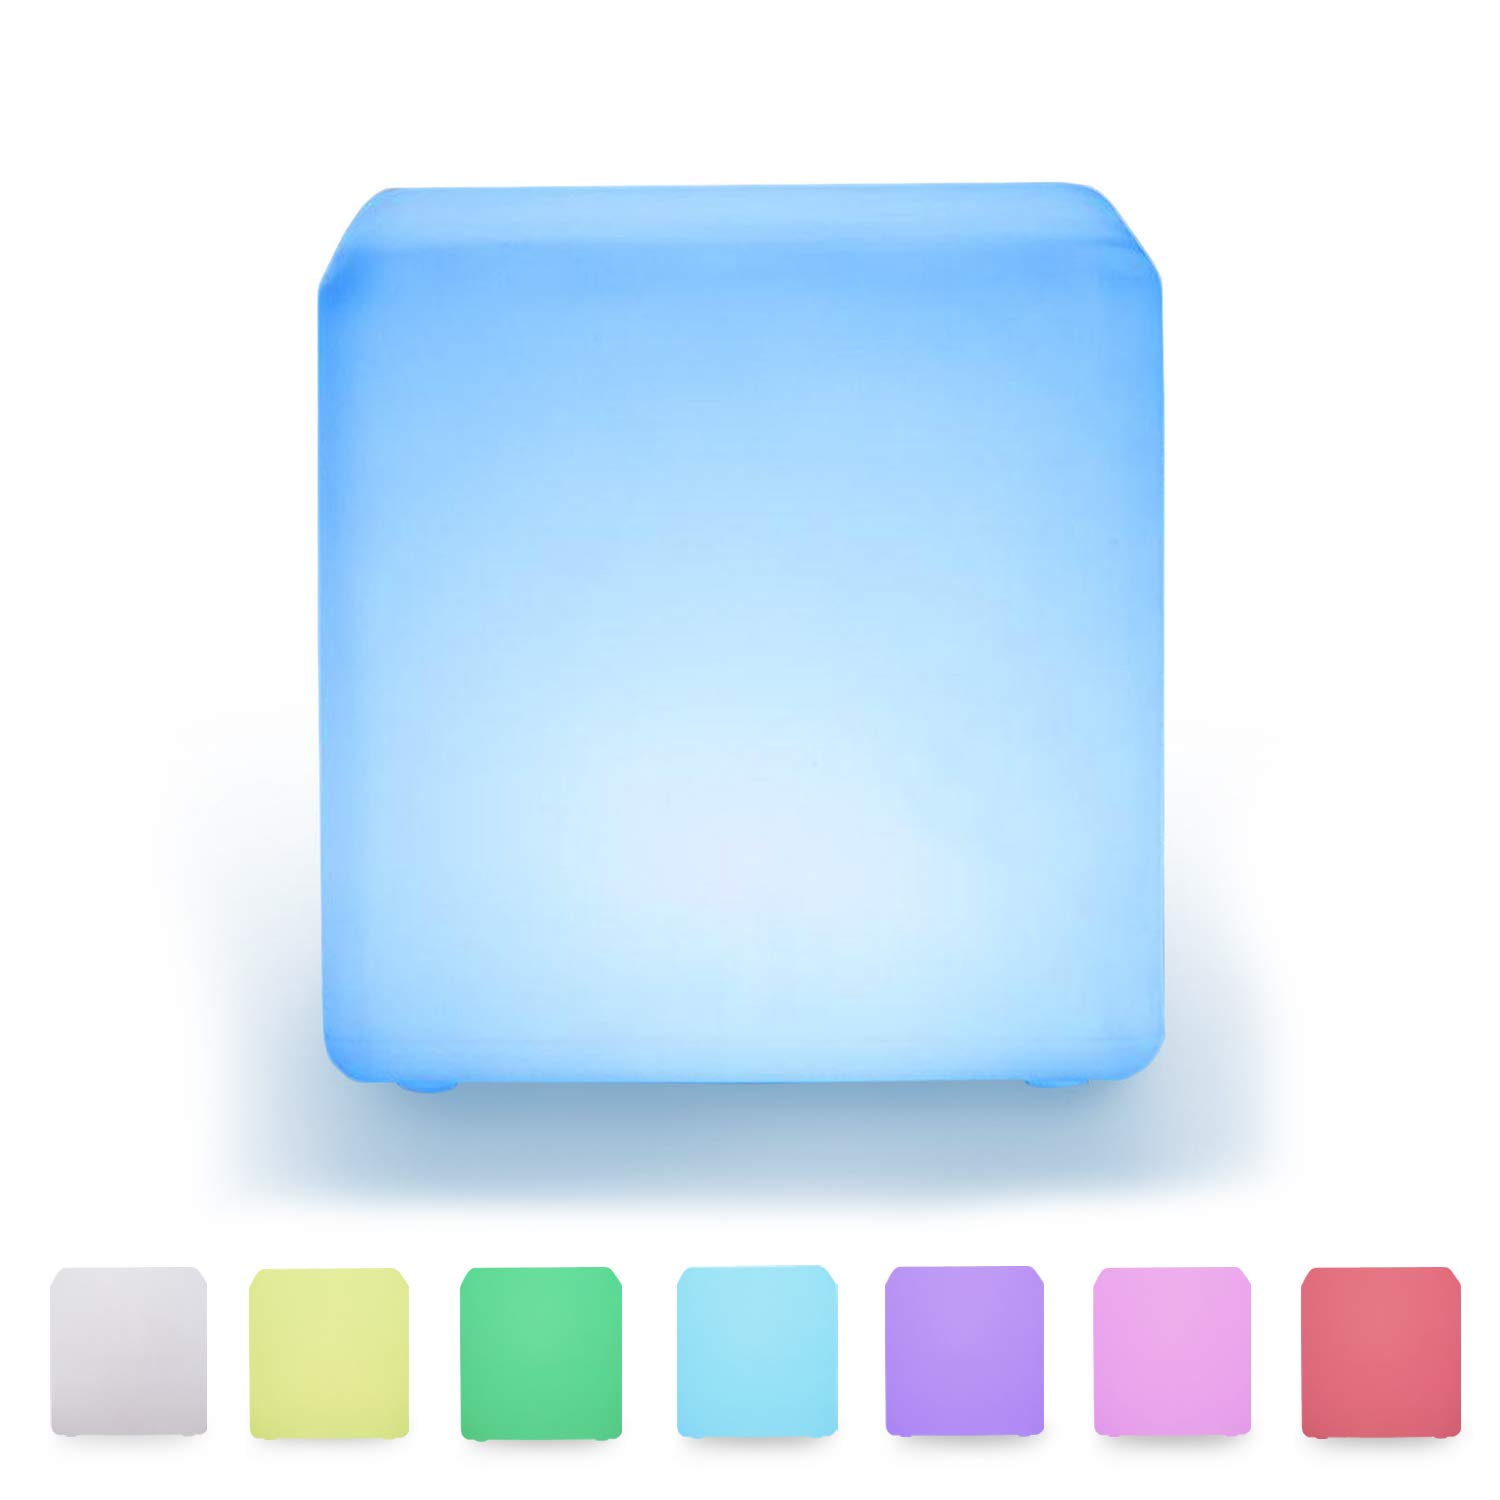 LOFTEK LED Light Cube: 16-inch Light Cube Seats, Color Changing Kid's Stool, Rechargeable Bar Stools, UL Listed Adapter, 4400mAh Capacity, Perfect for Sensory Education, Party Decoration by LOFTEK